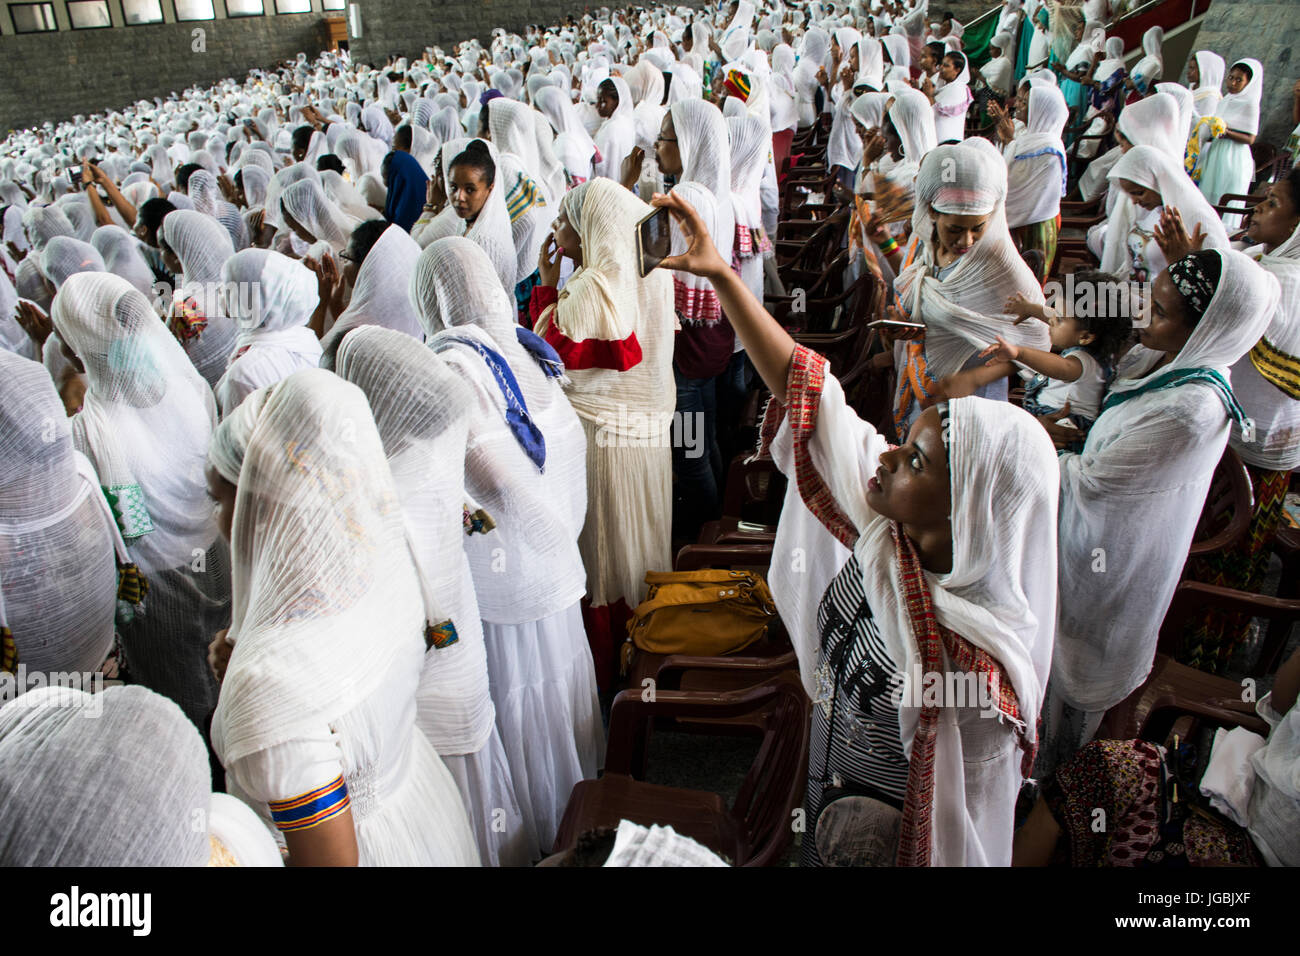 Ethiopian Orthodox Christian women during the St Yared day service inside Our Lady of Lebanon Church Harissa Lebanon. - Stock Image